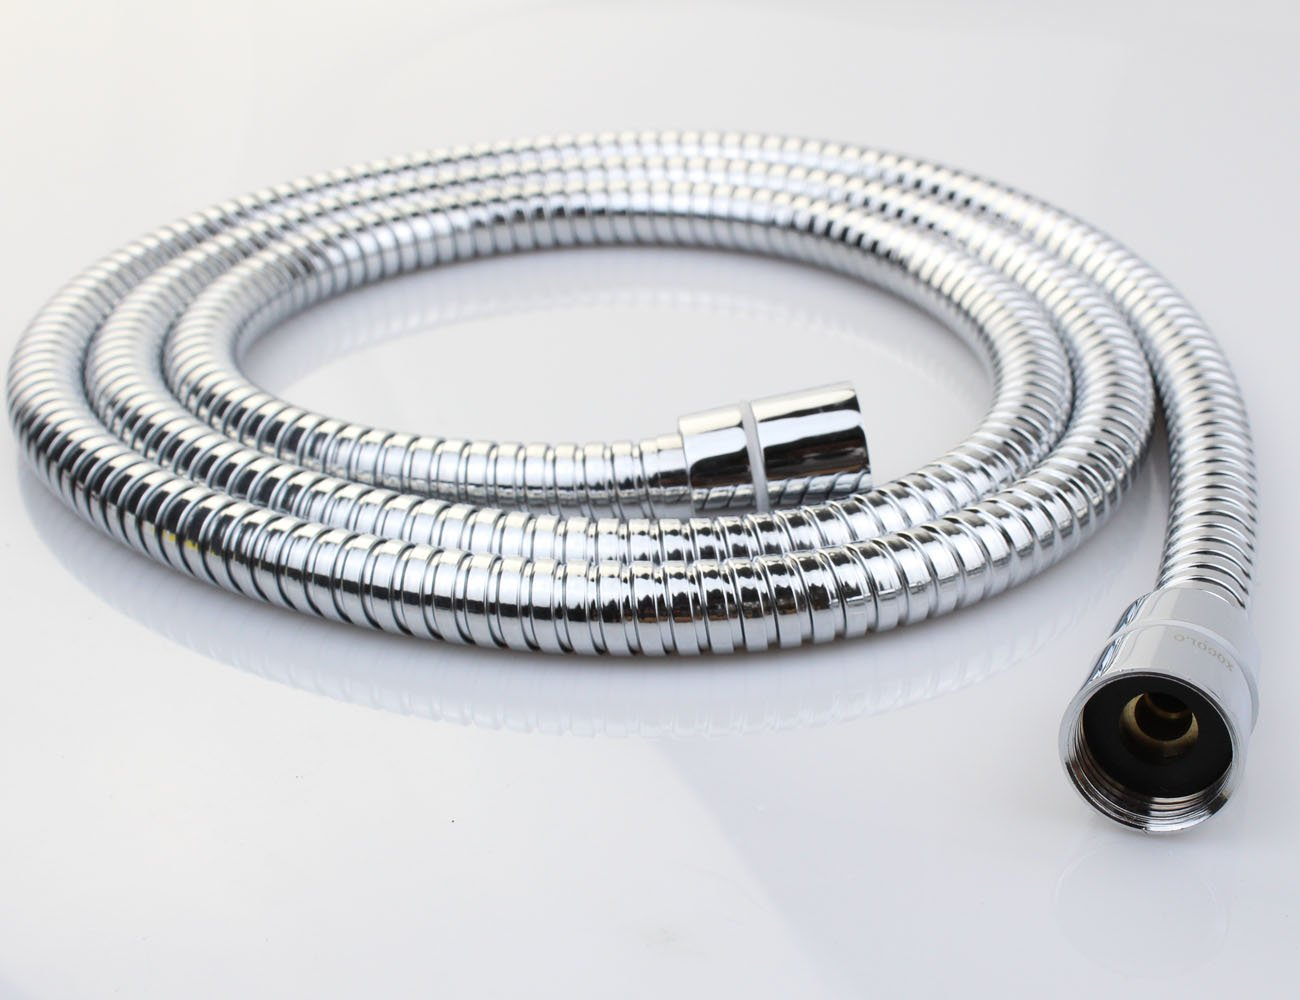 Xogolo 1.75m Anti-Kink Shower Hose,Stainlees Steel - Polished Chrome